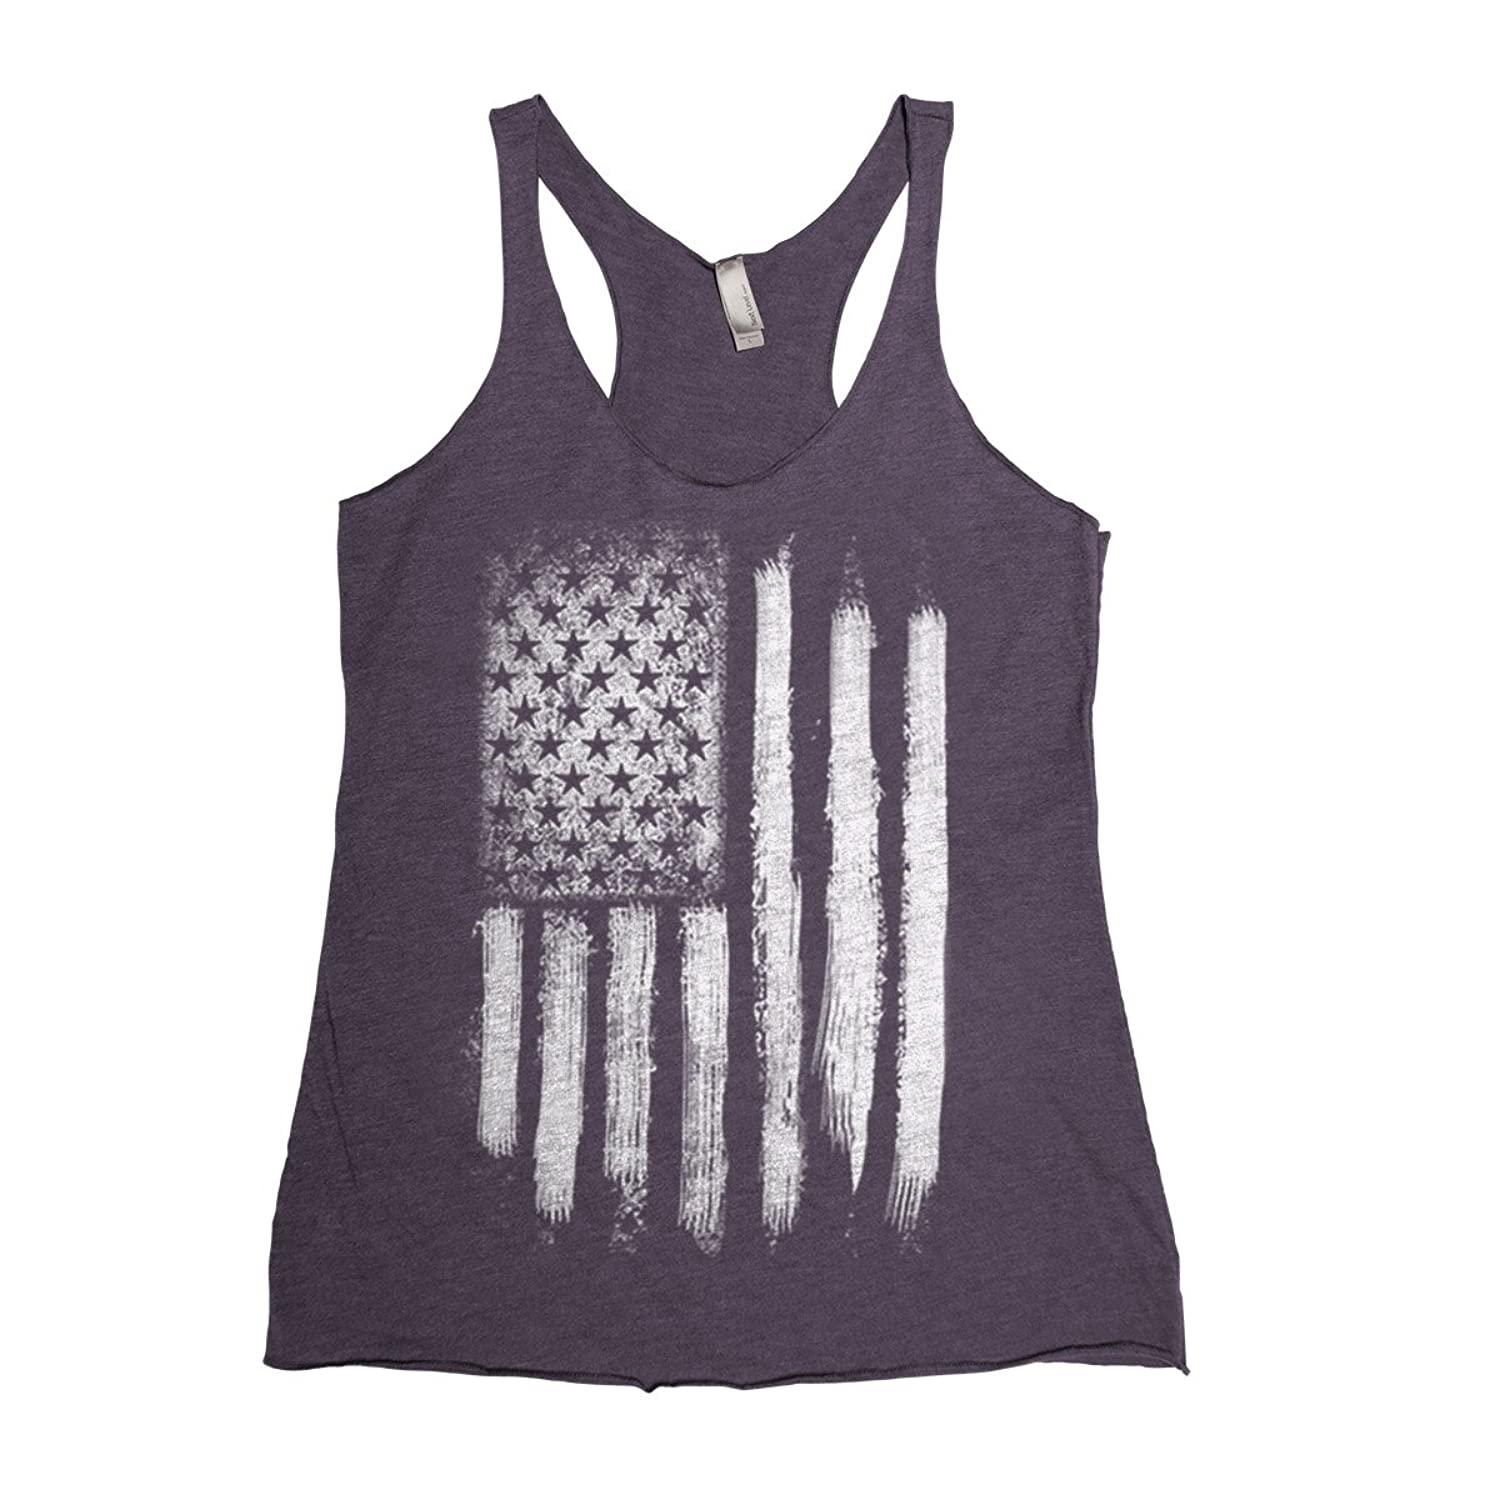 Couthclothing Women's American Flag Racerback Tank Top